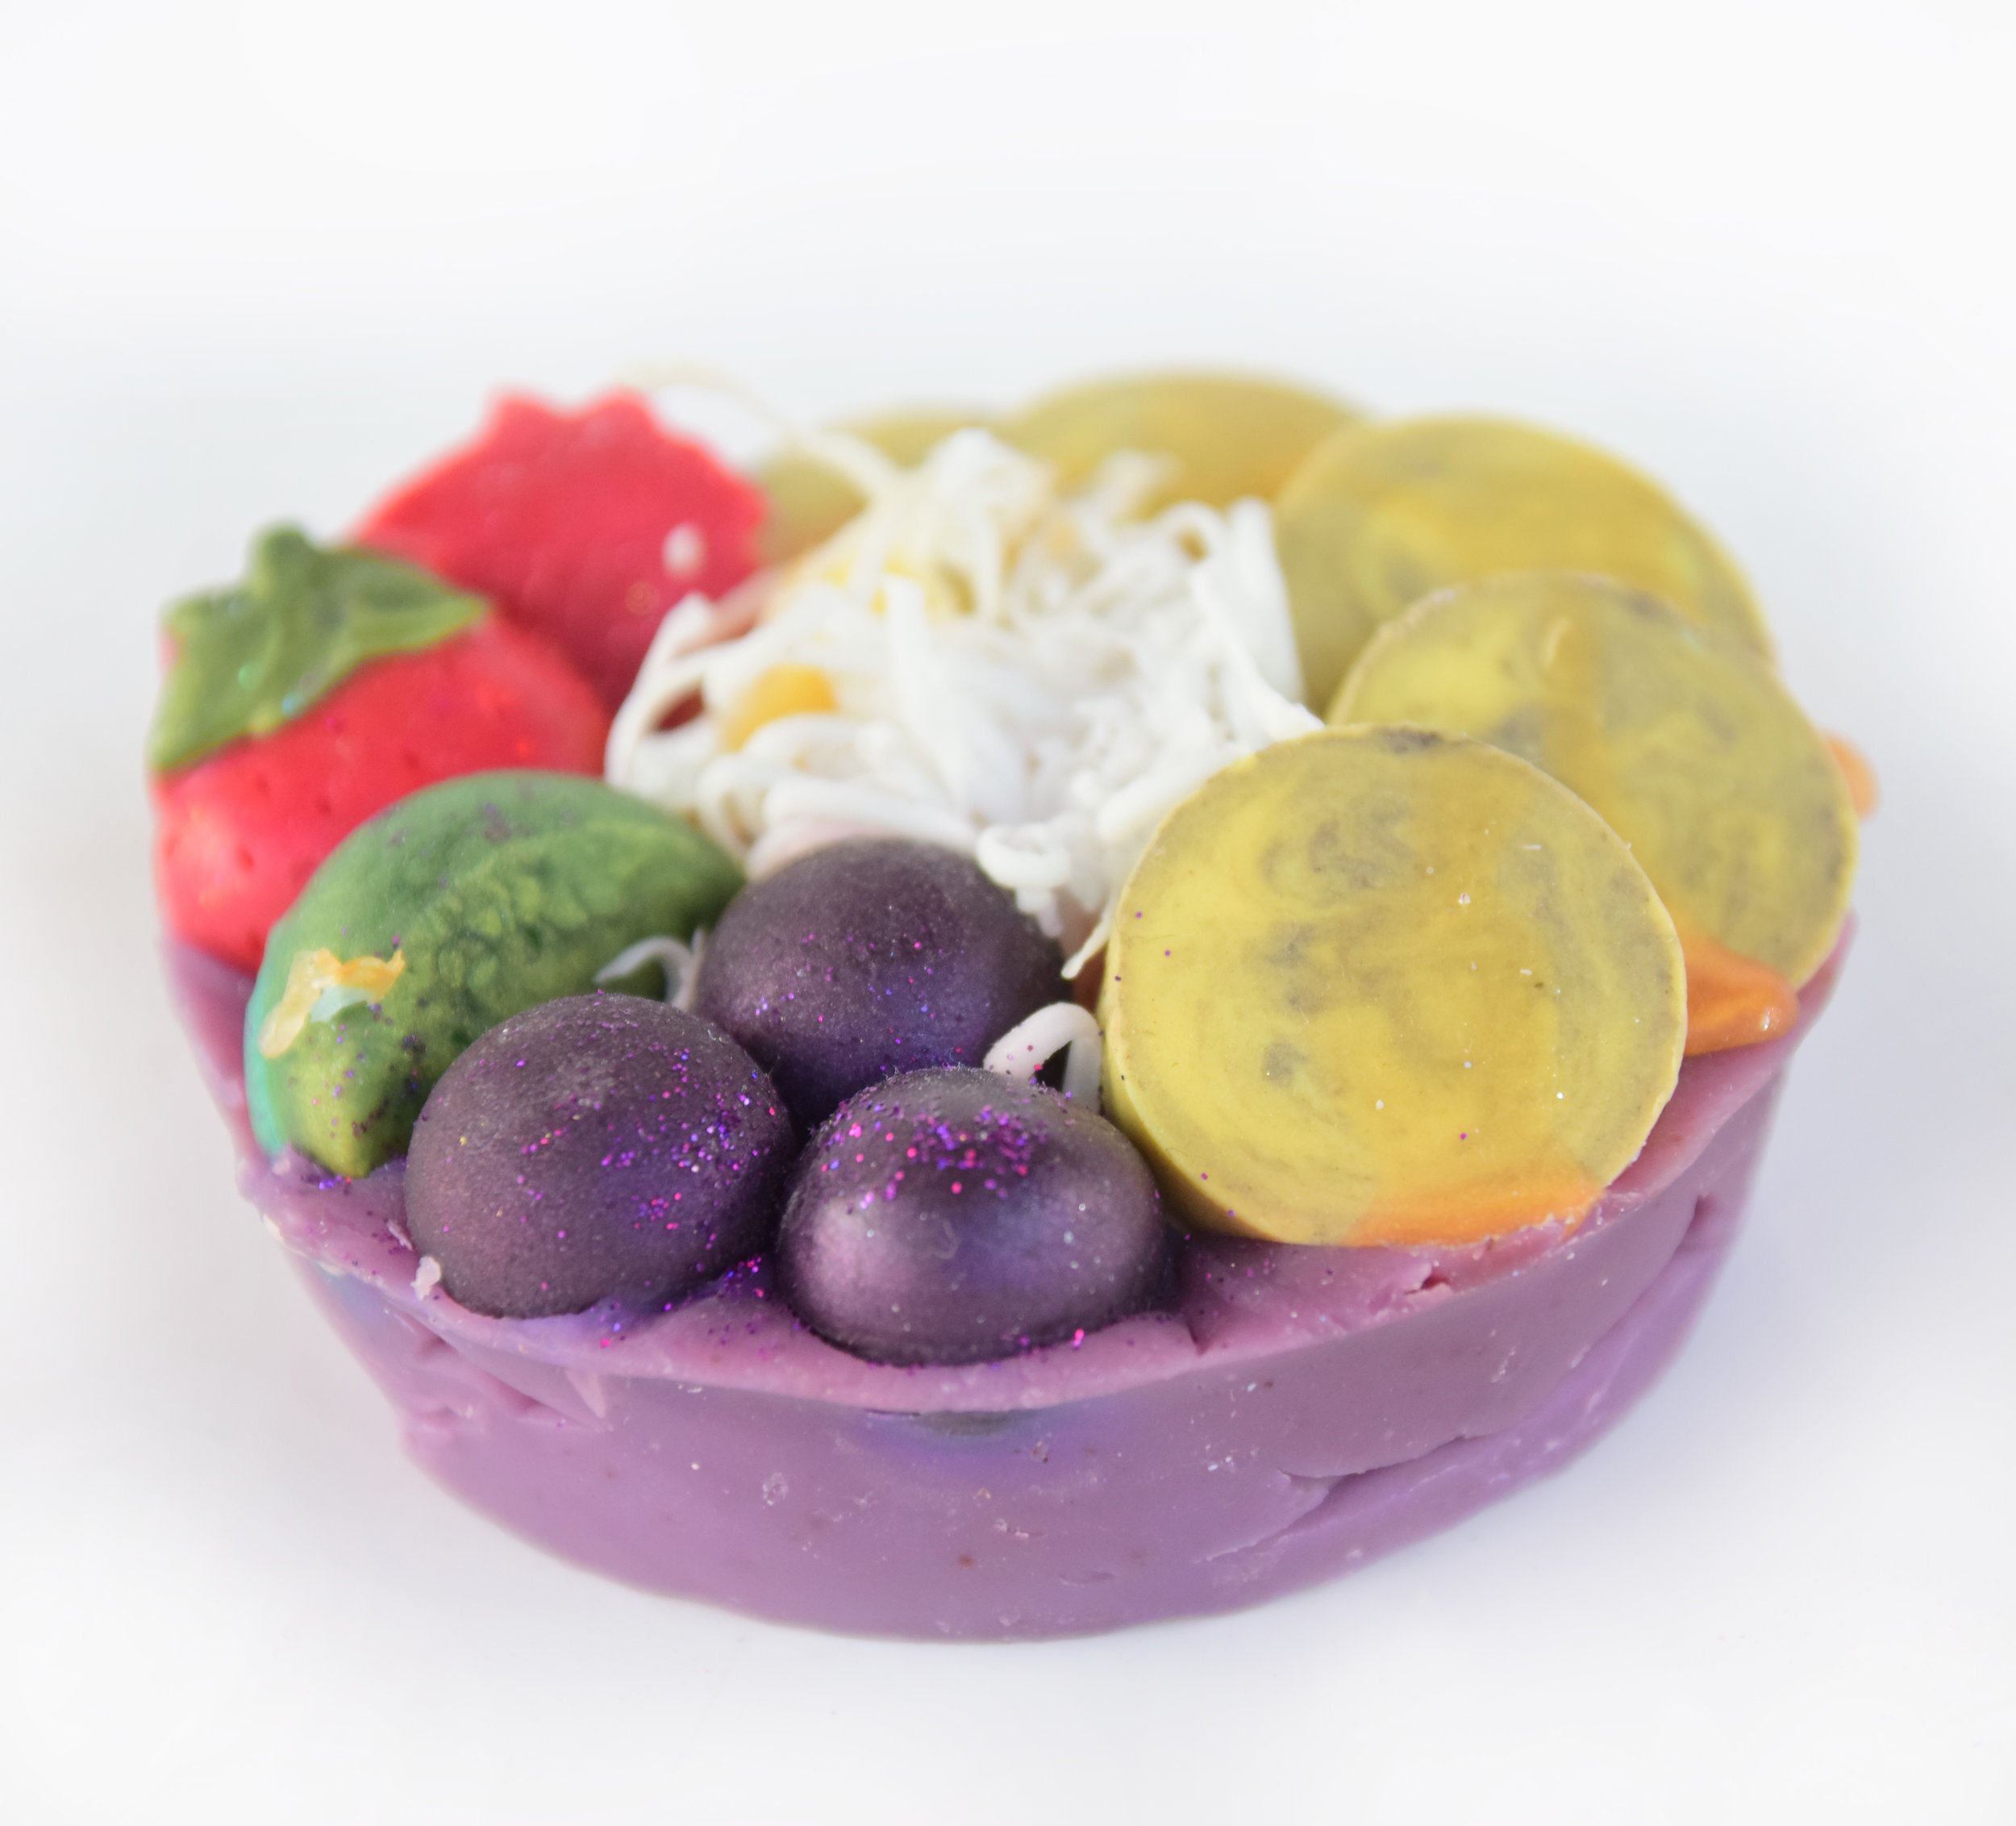 Acai Bowl Soap - Original with melt & pour embeds